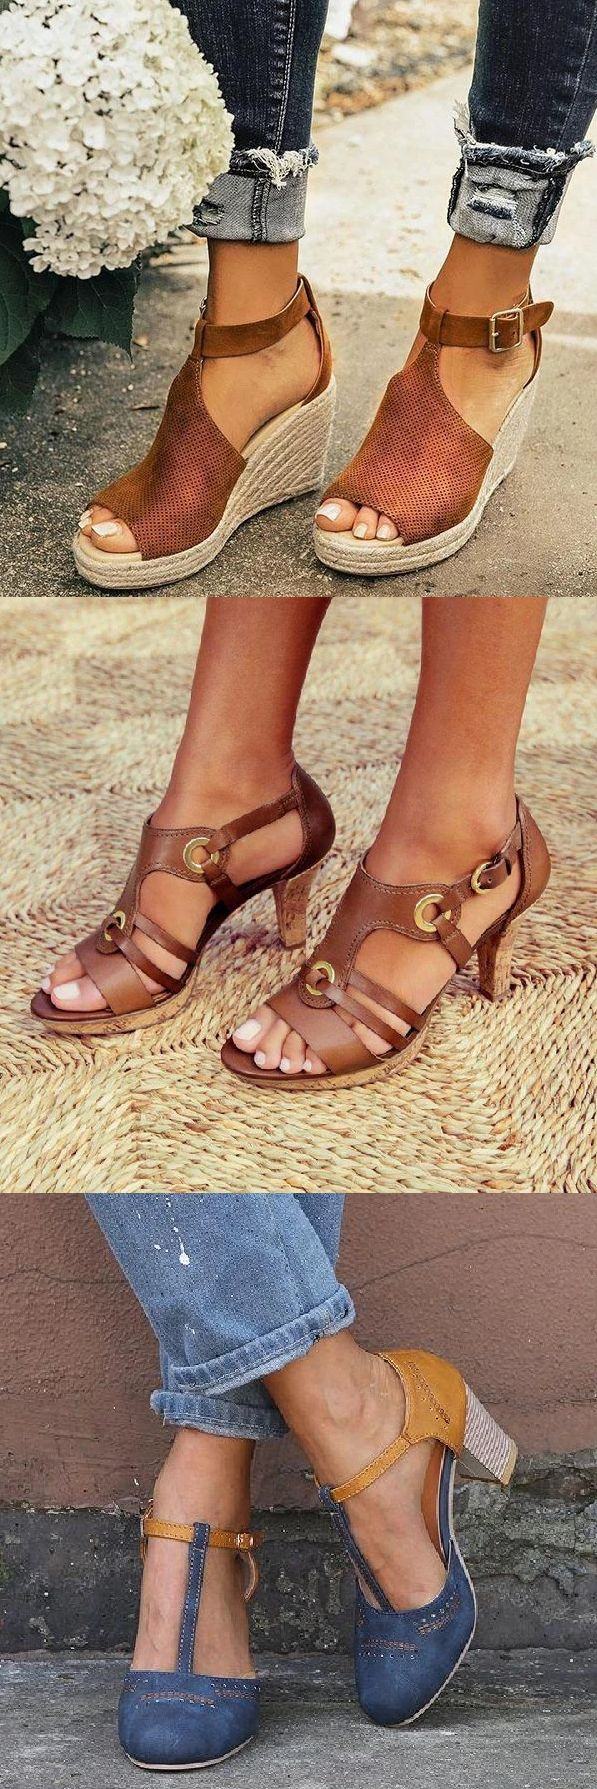 2020 New Trendy Sandals Shoes   2020 summer fashion jewelry #